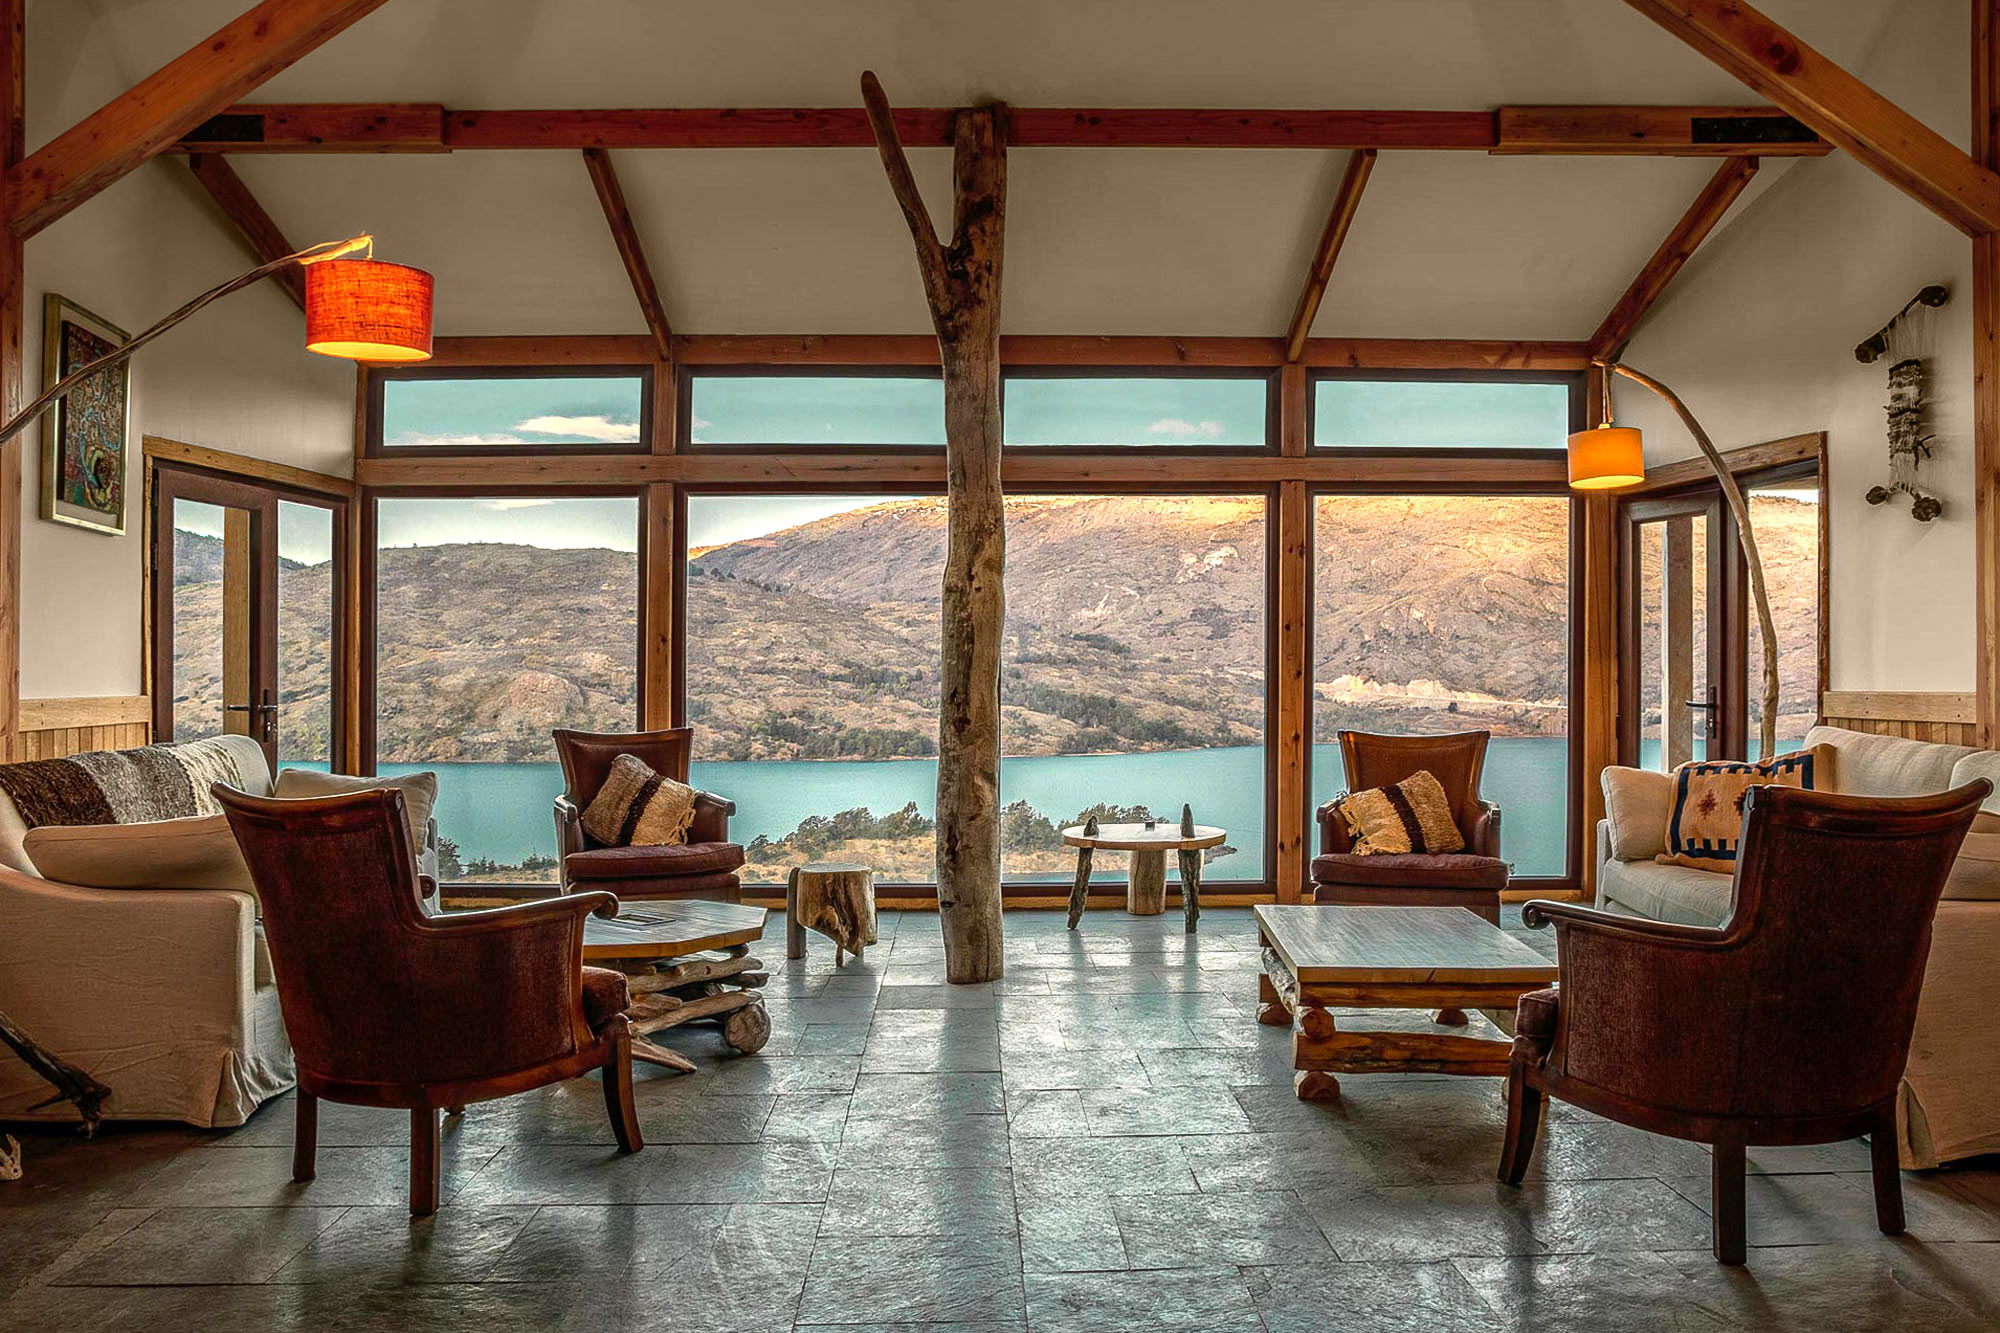 Luxury-Lodge-Photography-by-Adrian-Kilchherr-Hotel-Resort-Photographer-Chile